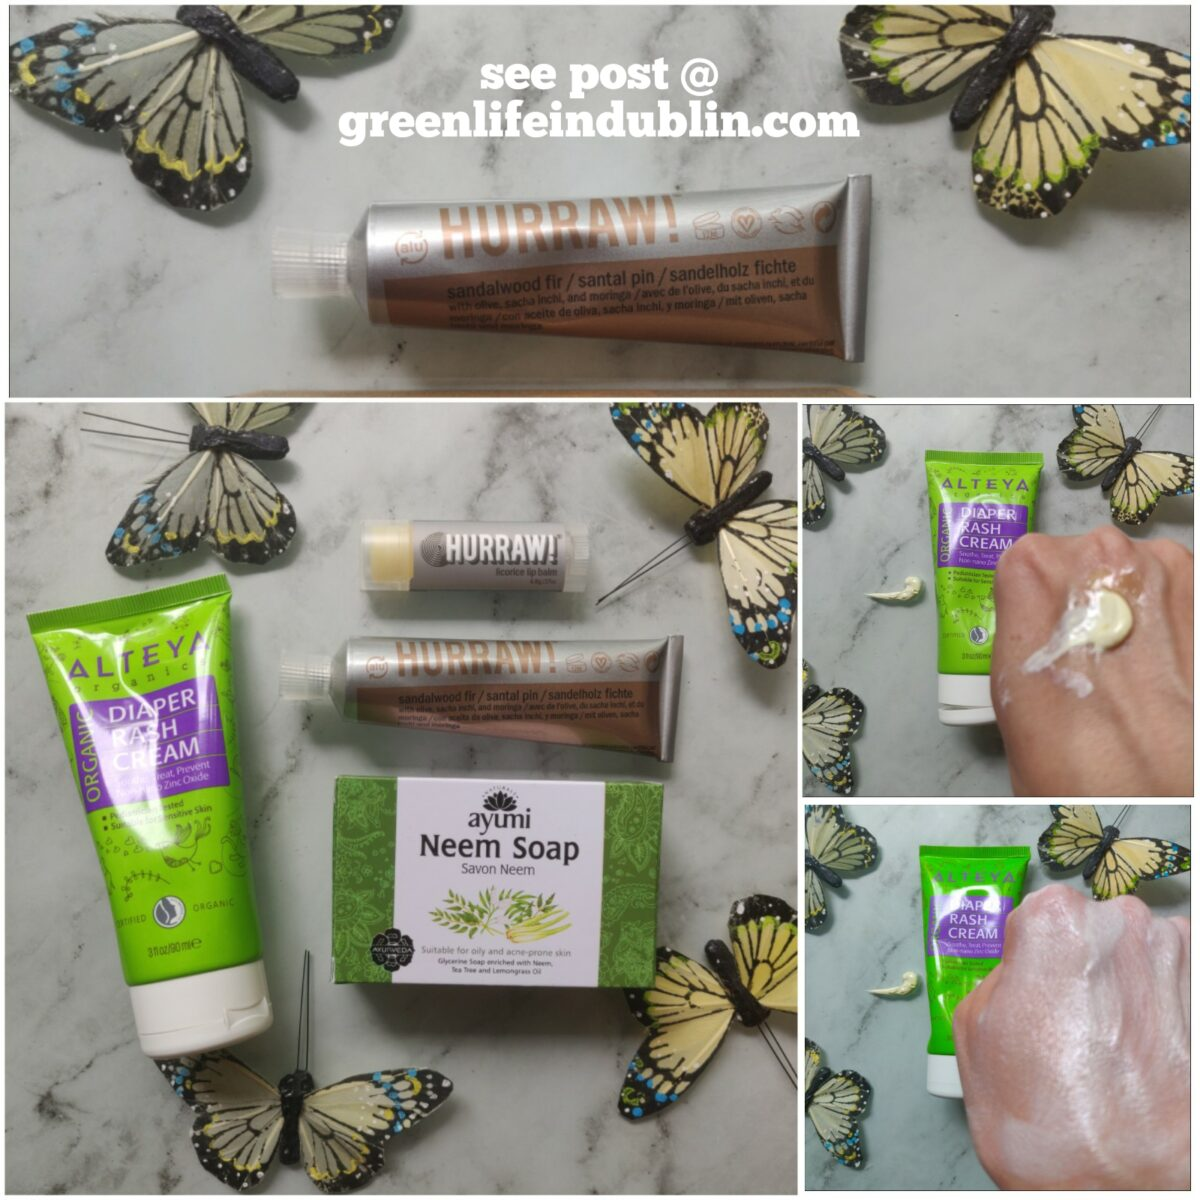 Love Lula Picks & Reviews – Hurraw, Alteya Organics, Ayumi [AD]